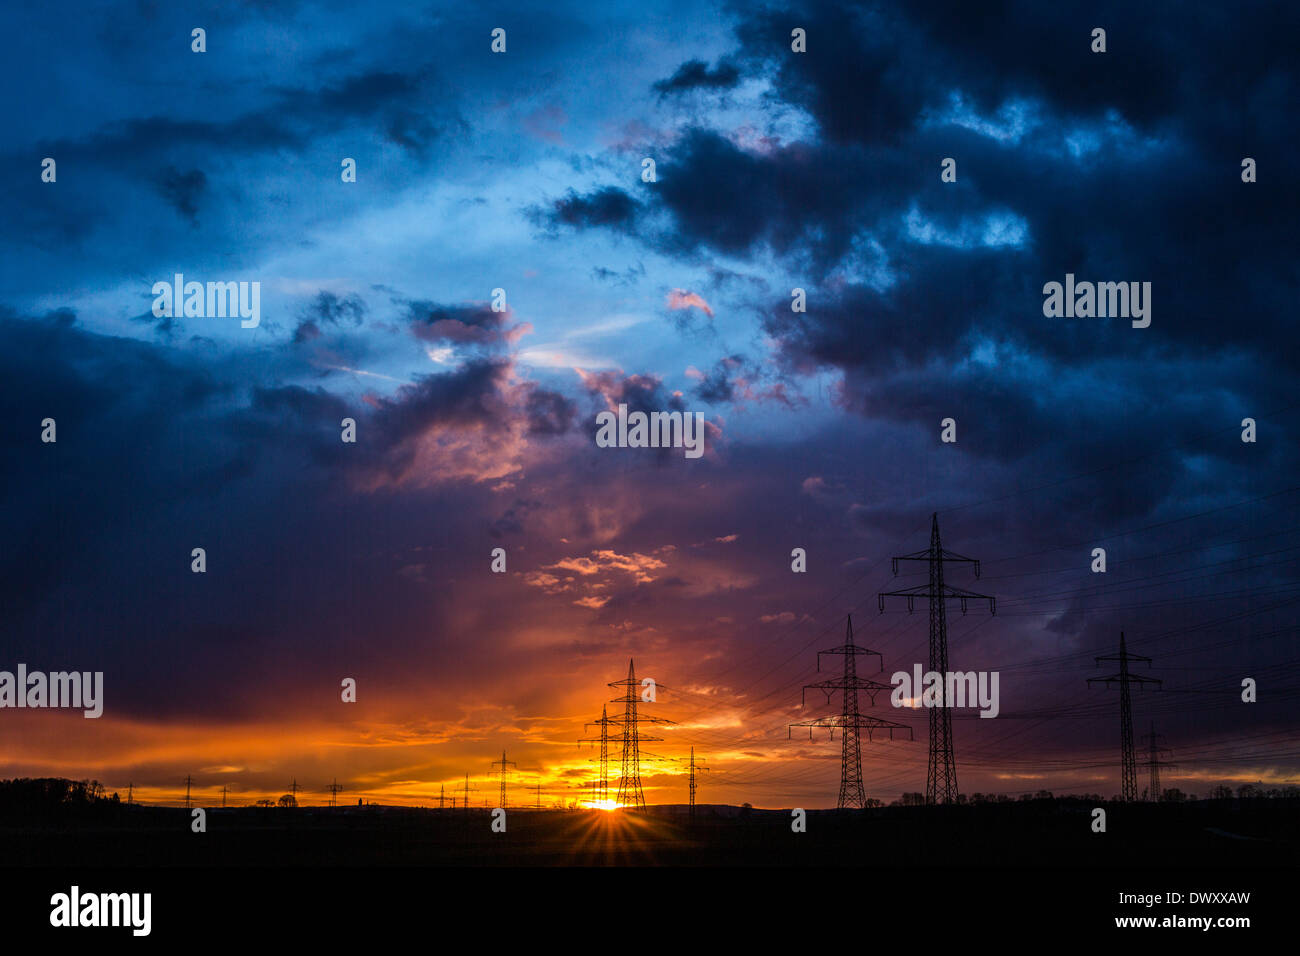 Sunset with pylons - Stock Image